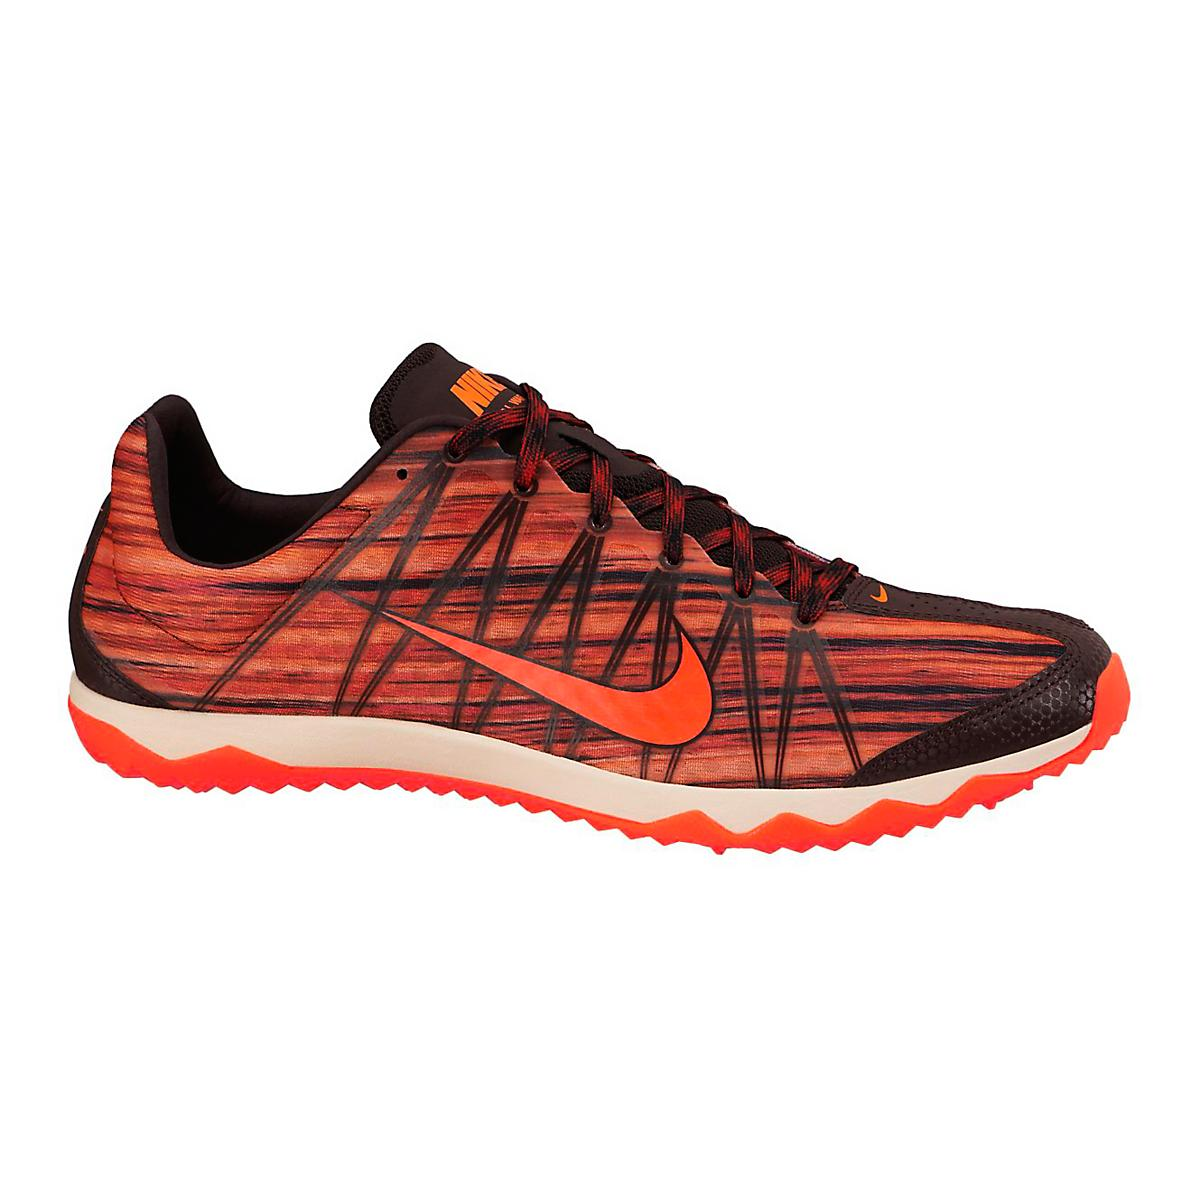 timeless design 5b952 51691 Mens Nike Zoom Rival Waffle Cross Country Shoe at Road Runner Sports